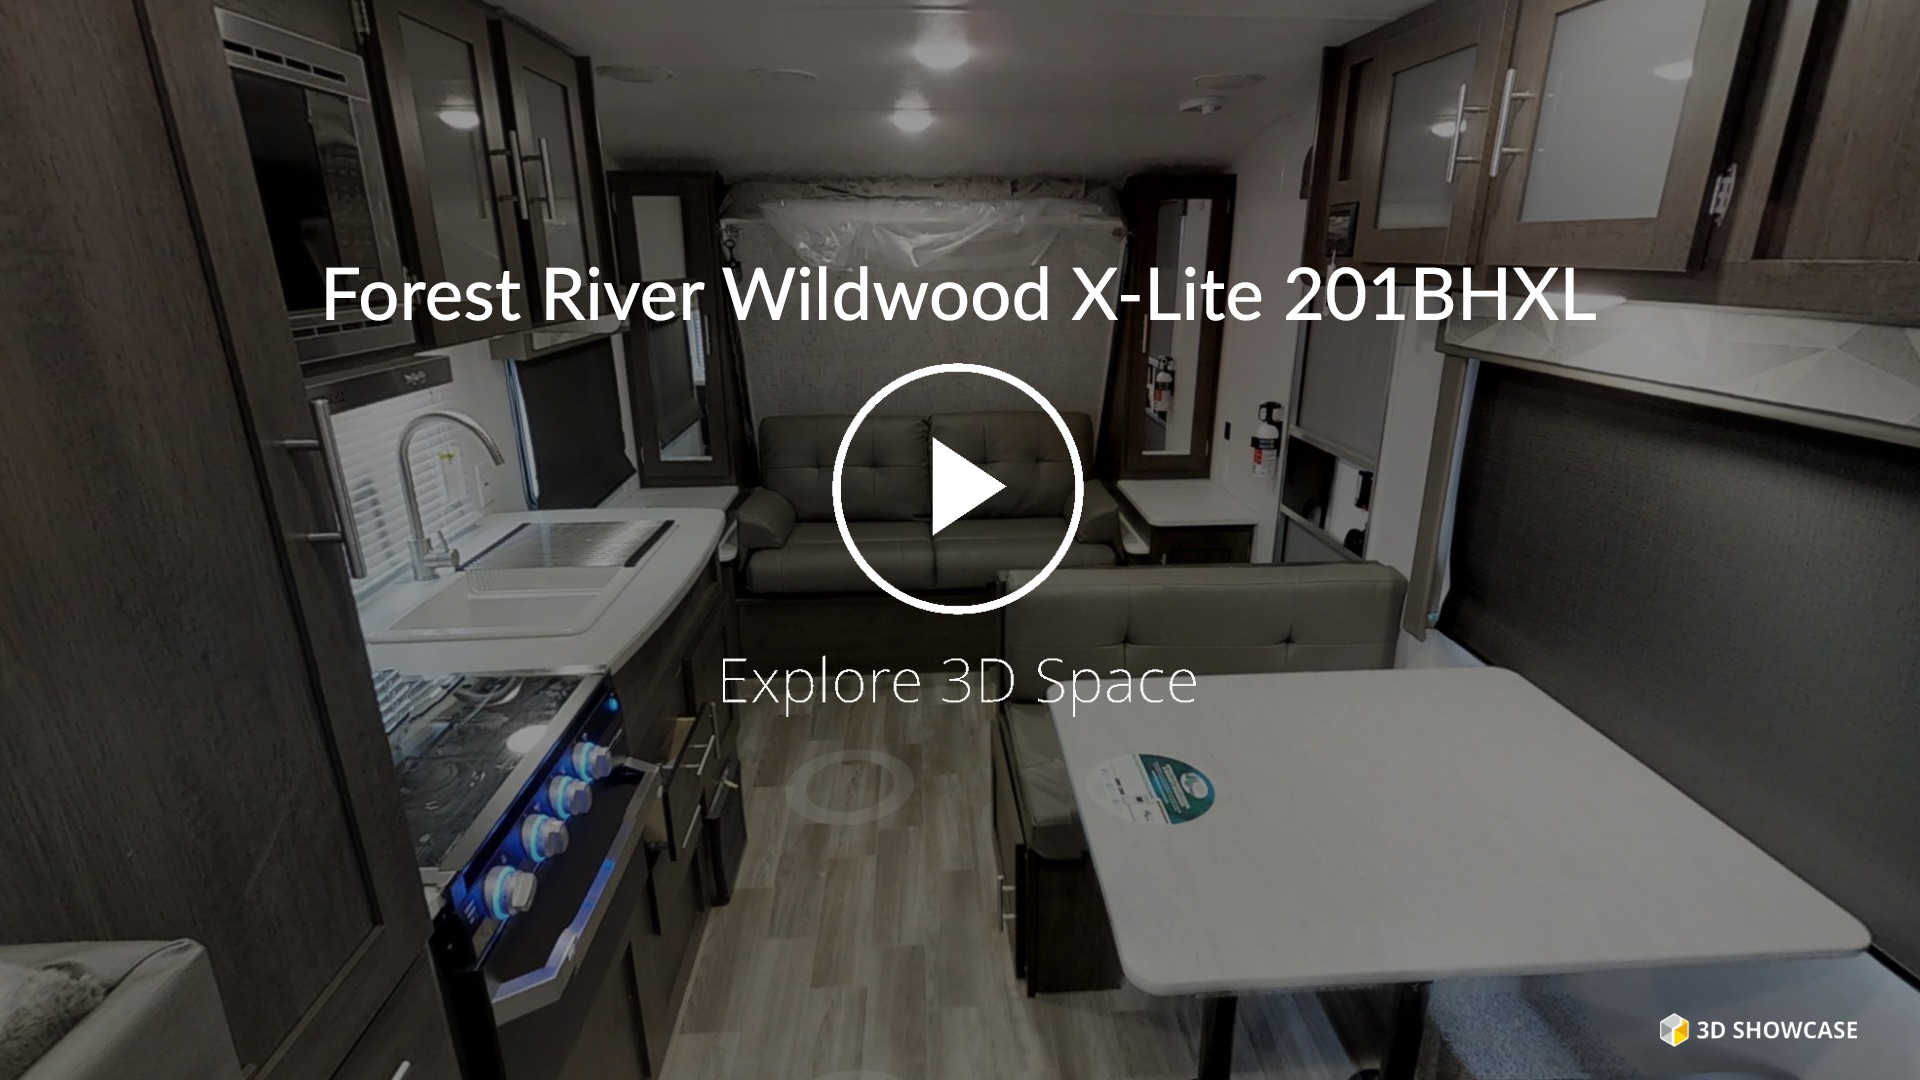 Forest River Wildwood X-Lite 201BHXL